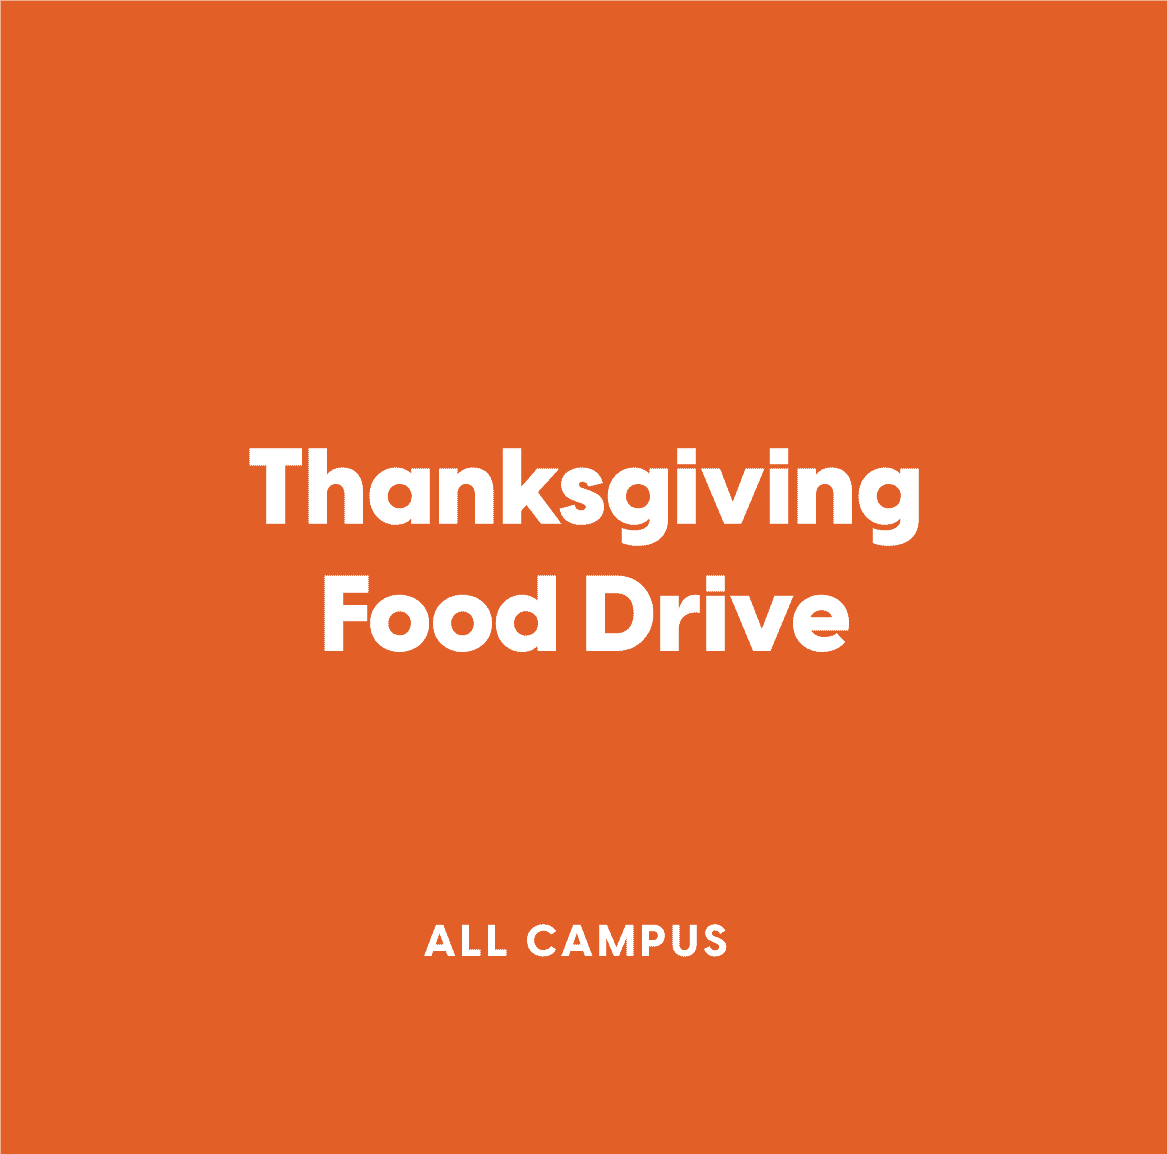 All-Campus Thanksgiving Food Drive